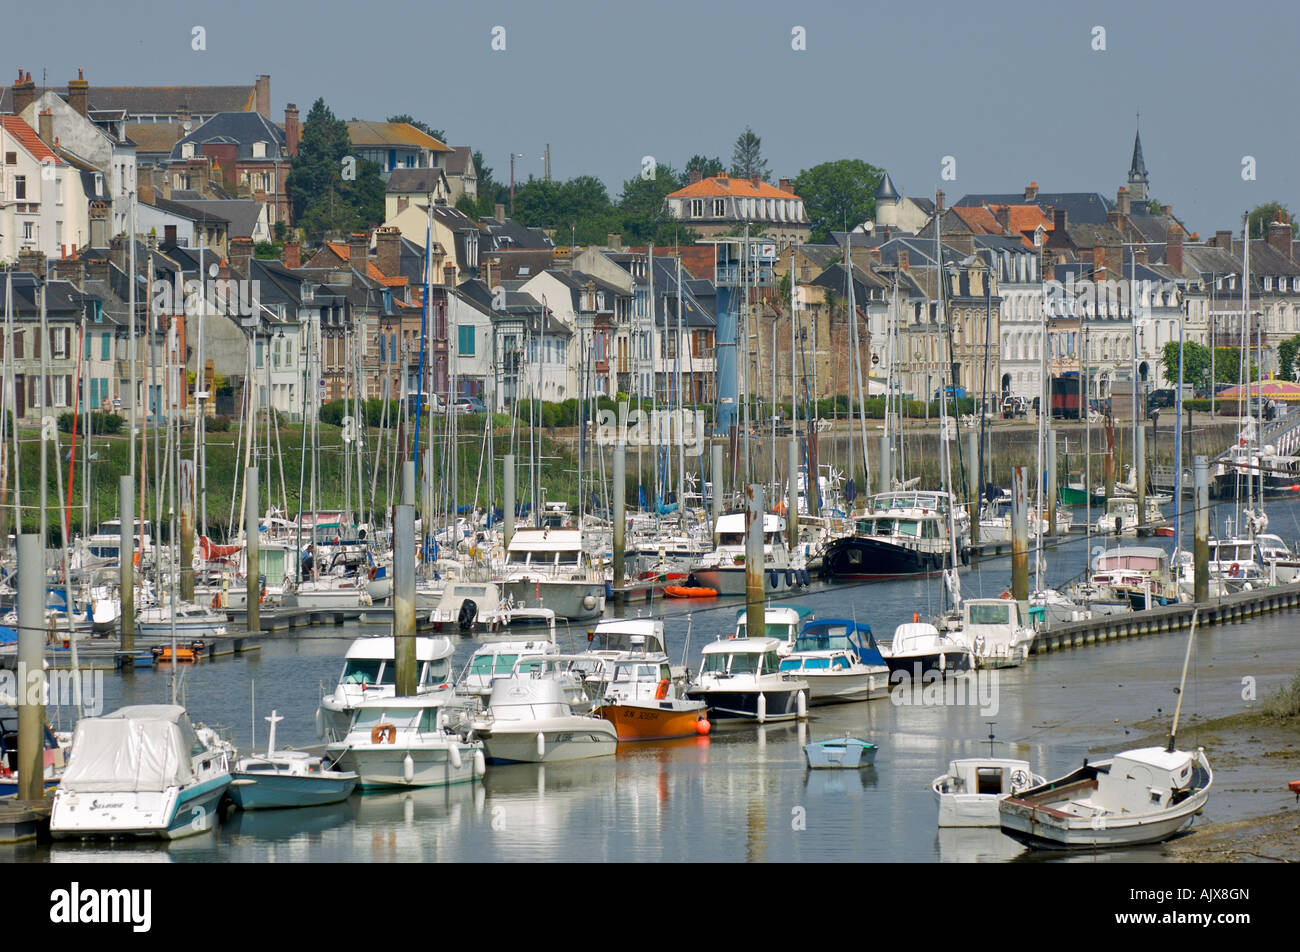 Boats at Saint-Valery-sur-Somme, Picardy, France Stock Photo